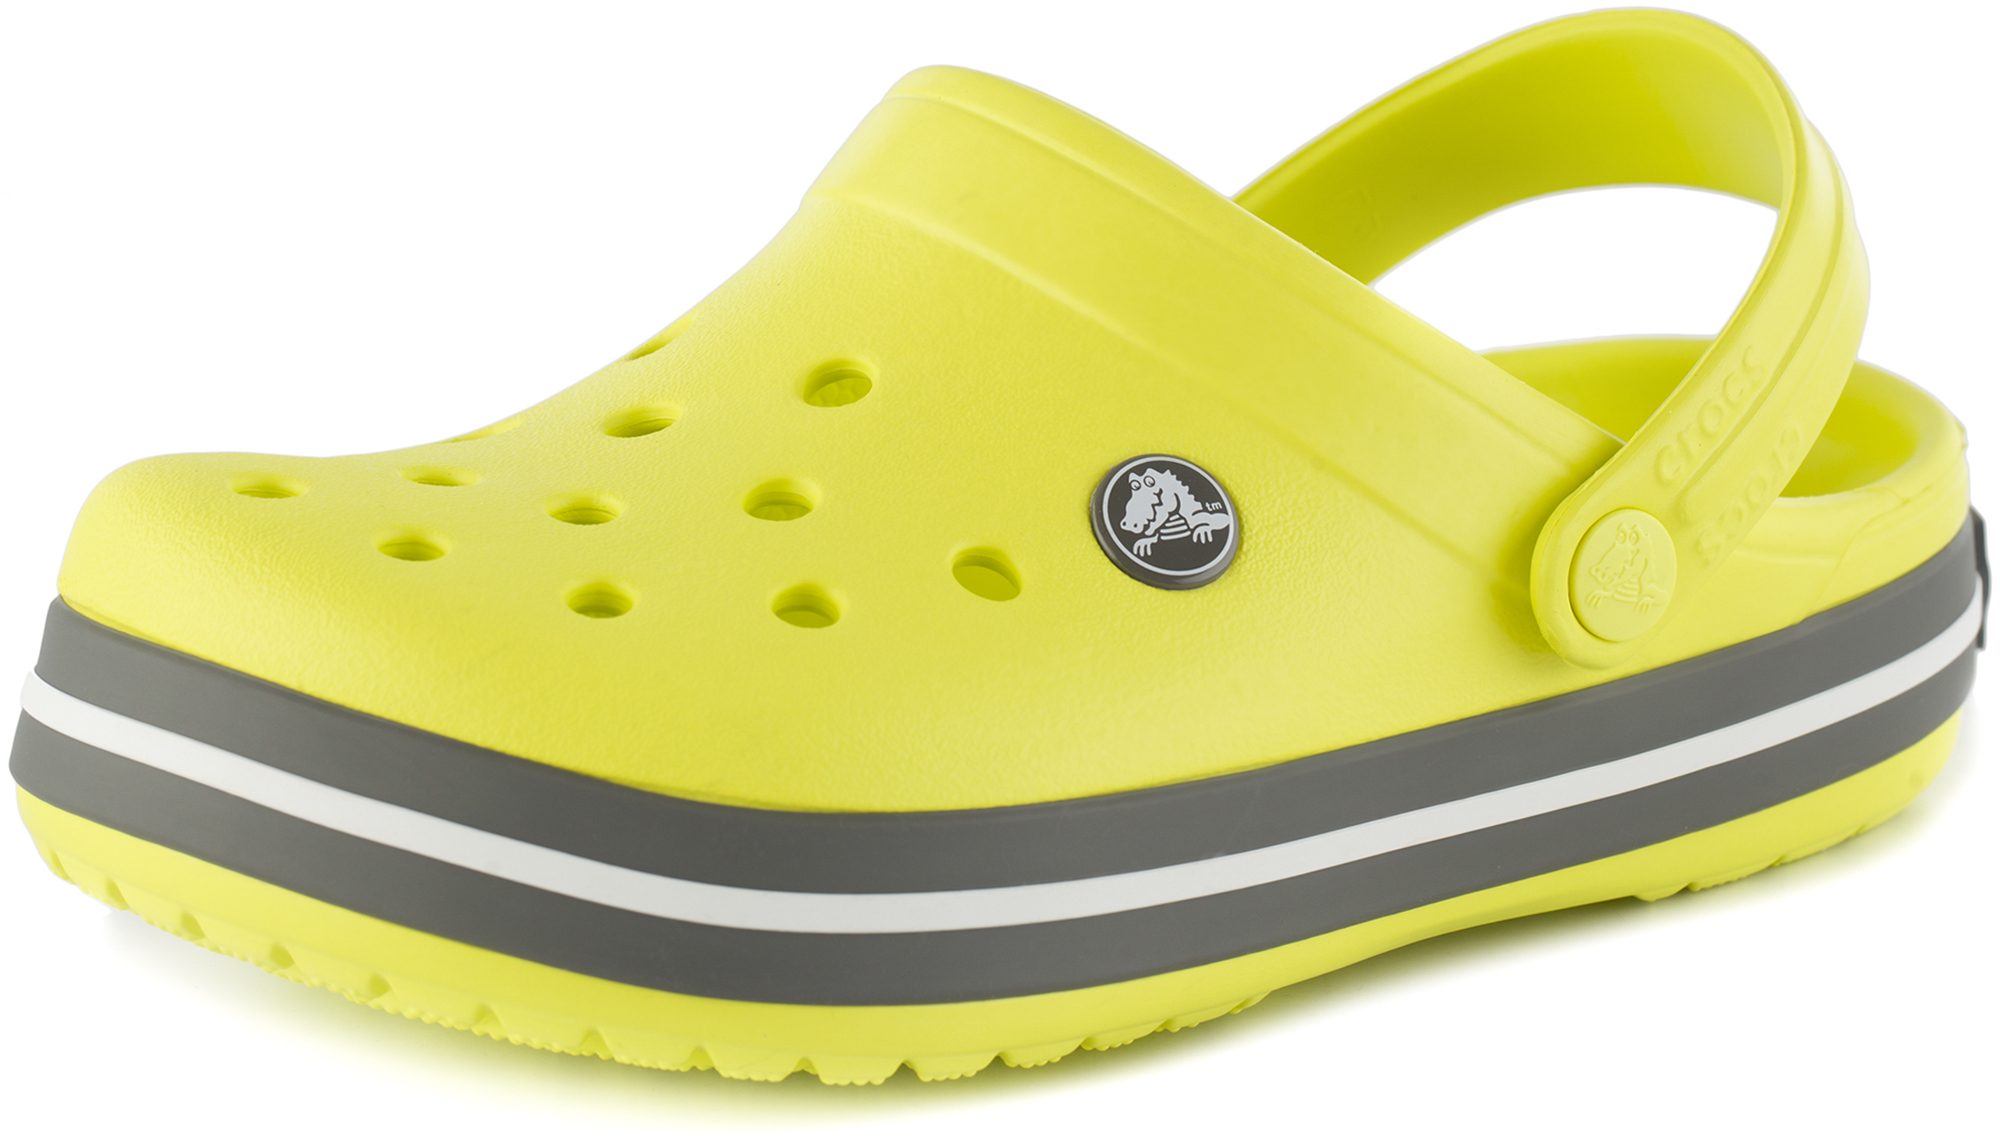 Crocs Шлепанцы детские Crocs Crocband Clog K, размер 27 crocs crocband clog k kids or boys for girls children kids tmallfs